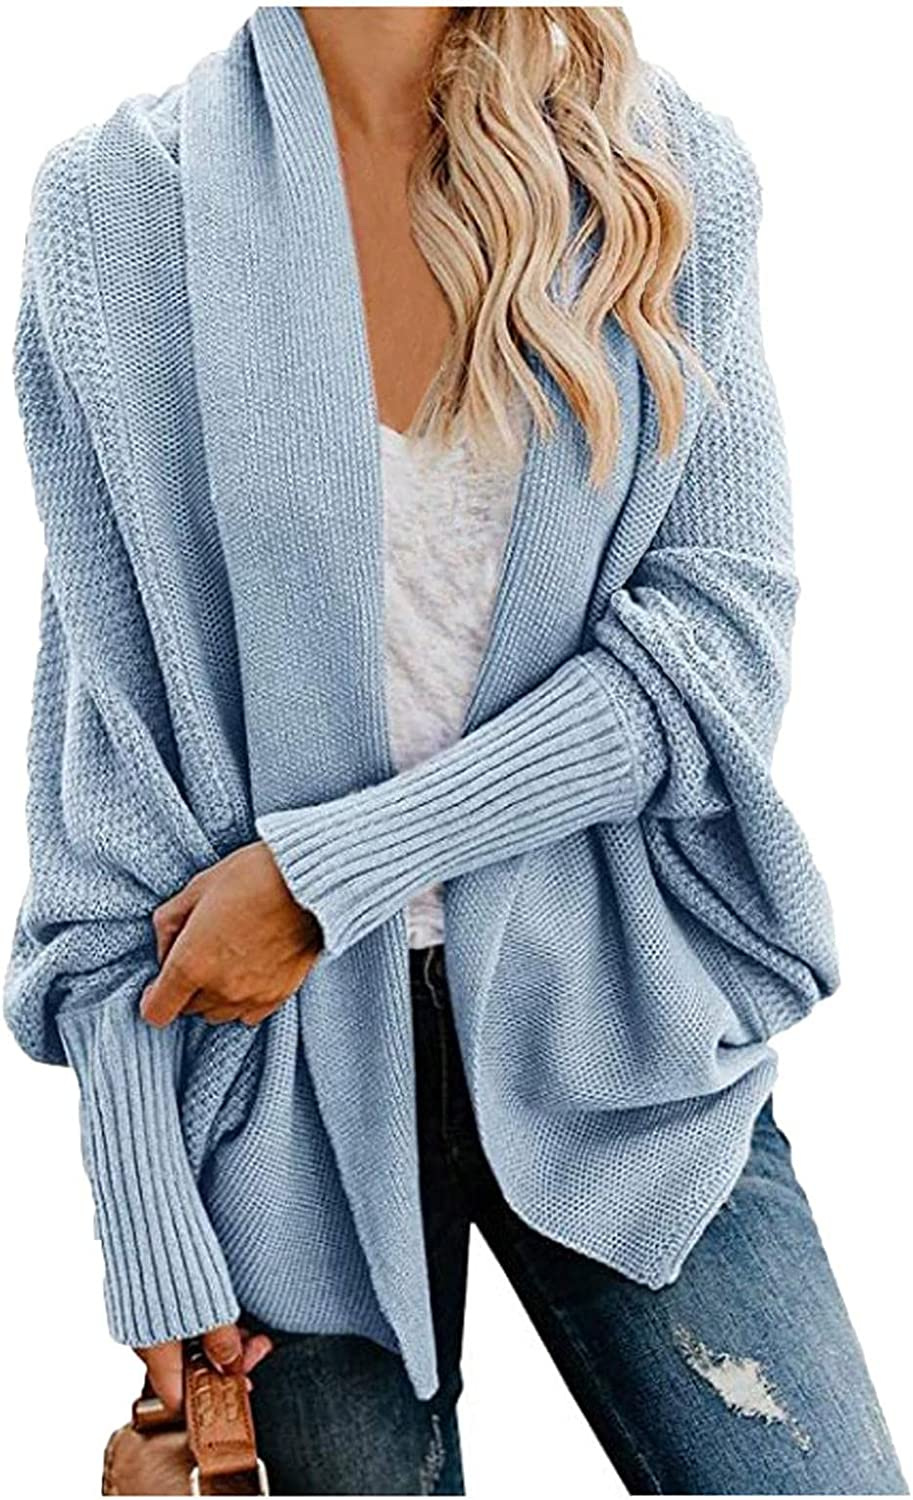 YMADREIG Cardigan Sweaters for Women Casual Loose Coat Ladies Winter Clothes Knit Soft Long Sleeve Tops Solid Color Blouse